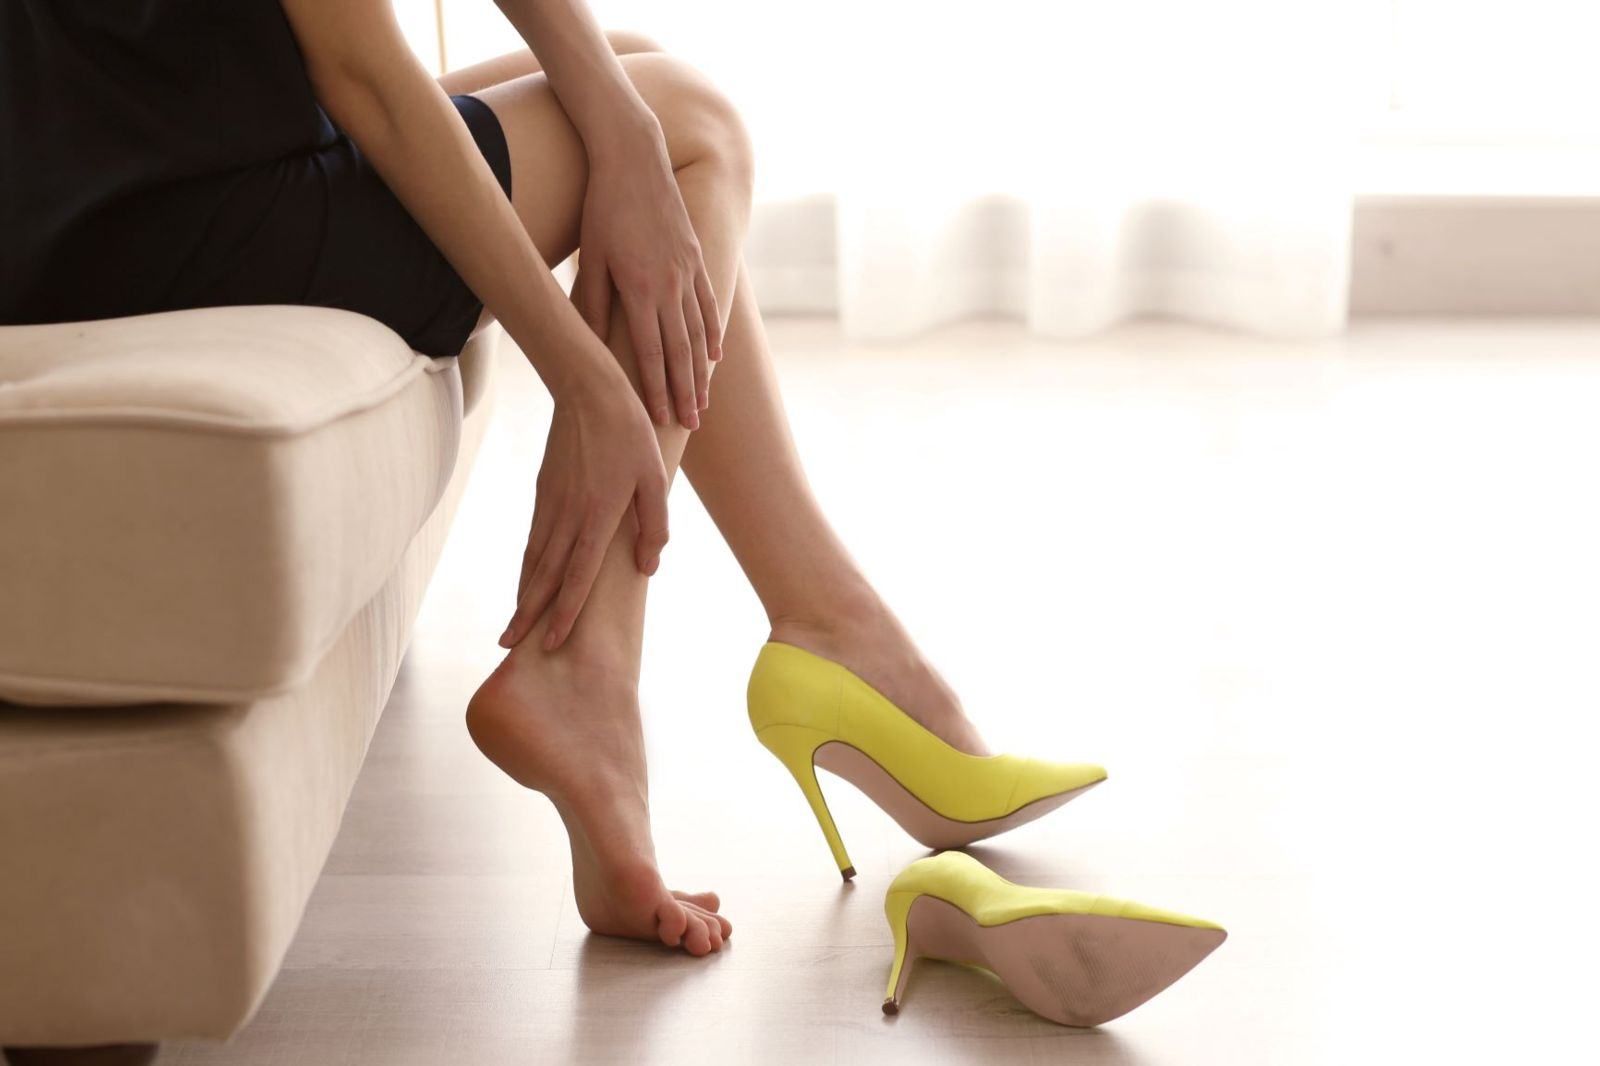 Use these exercises to wear your favorite high heels without pain